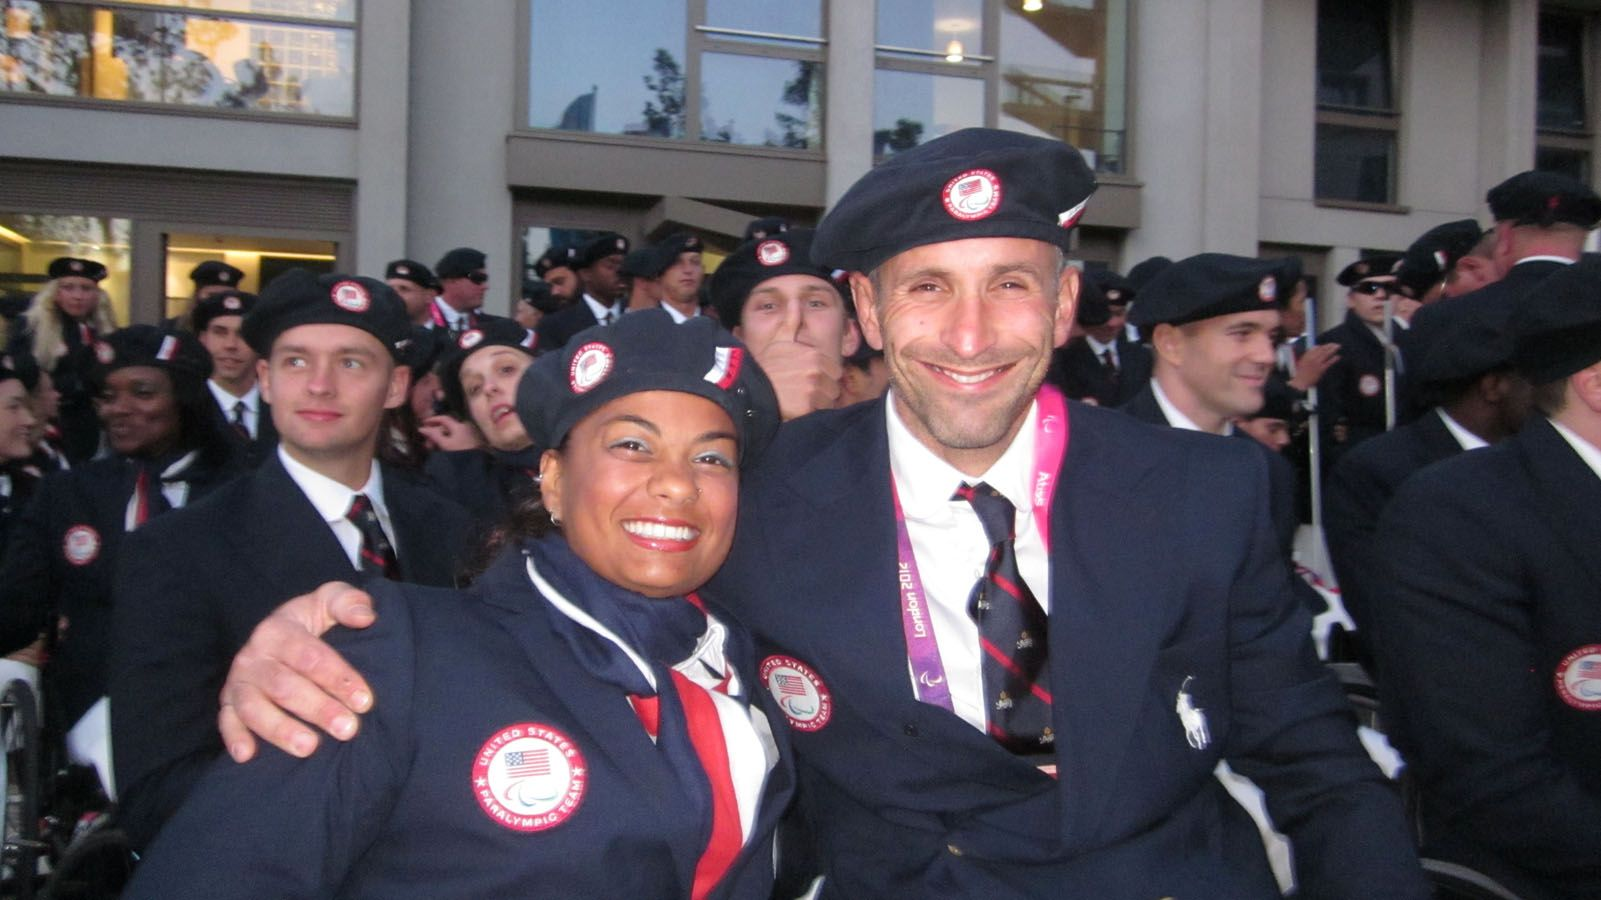 Anjali Forber-Pratt (Phd '12 Ed; MS '07 AHS; BS '06 AHS) and Adam Bleakney (MS '02 Media/Commmunication; BA '00 LAS) at London 2012 Opening Ceremony